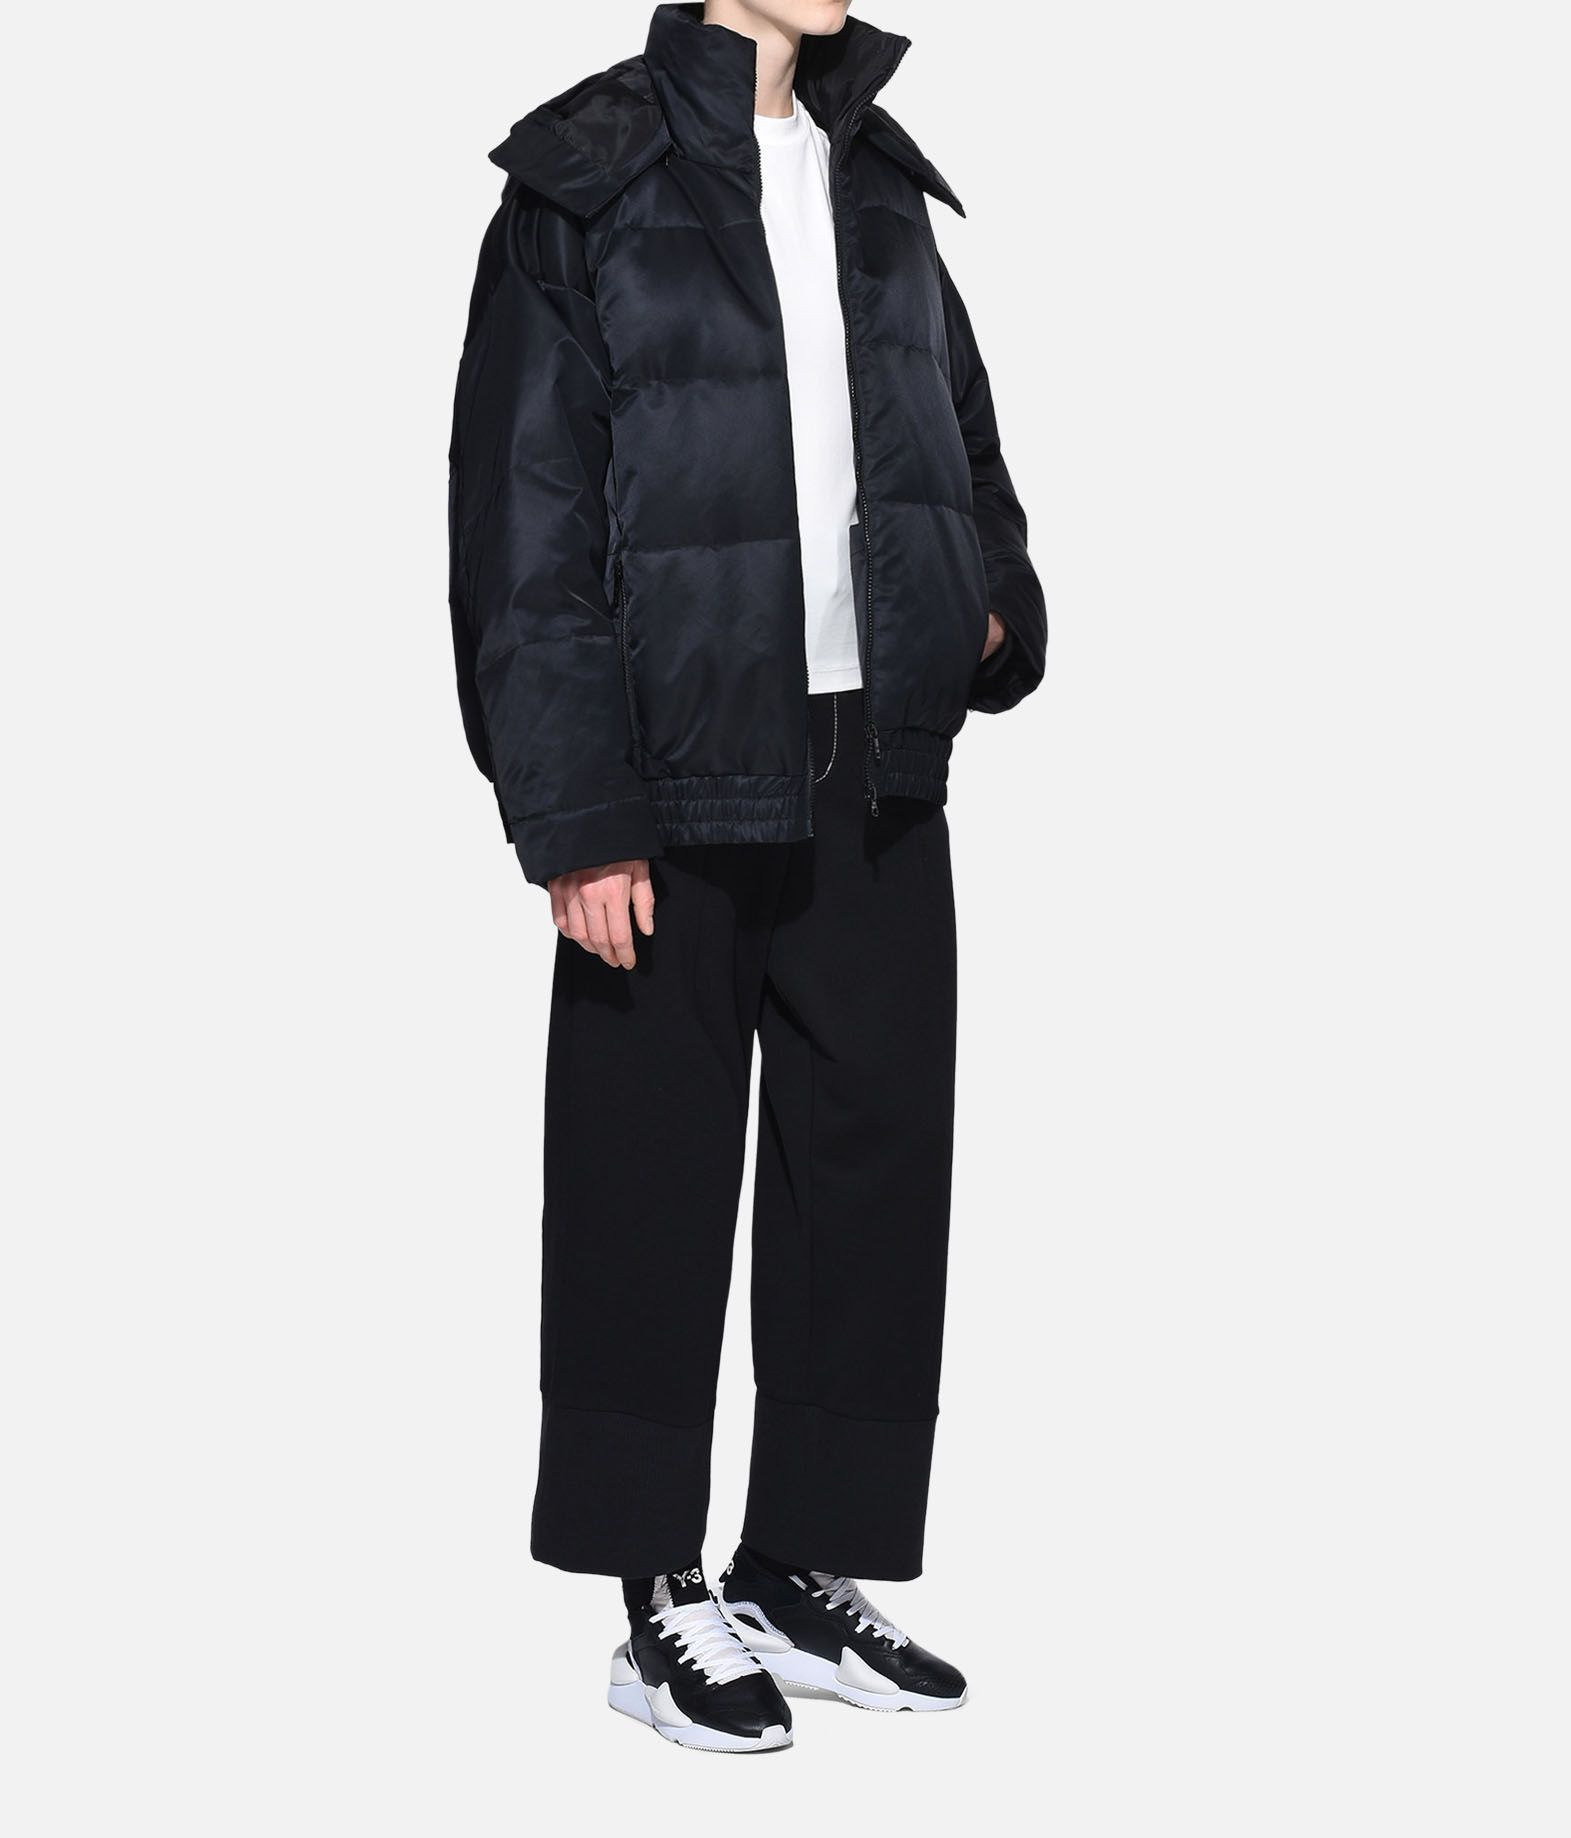 Y-3 Y-3 Down Hoodie Jacket Down jacket Woman a